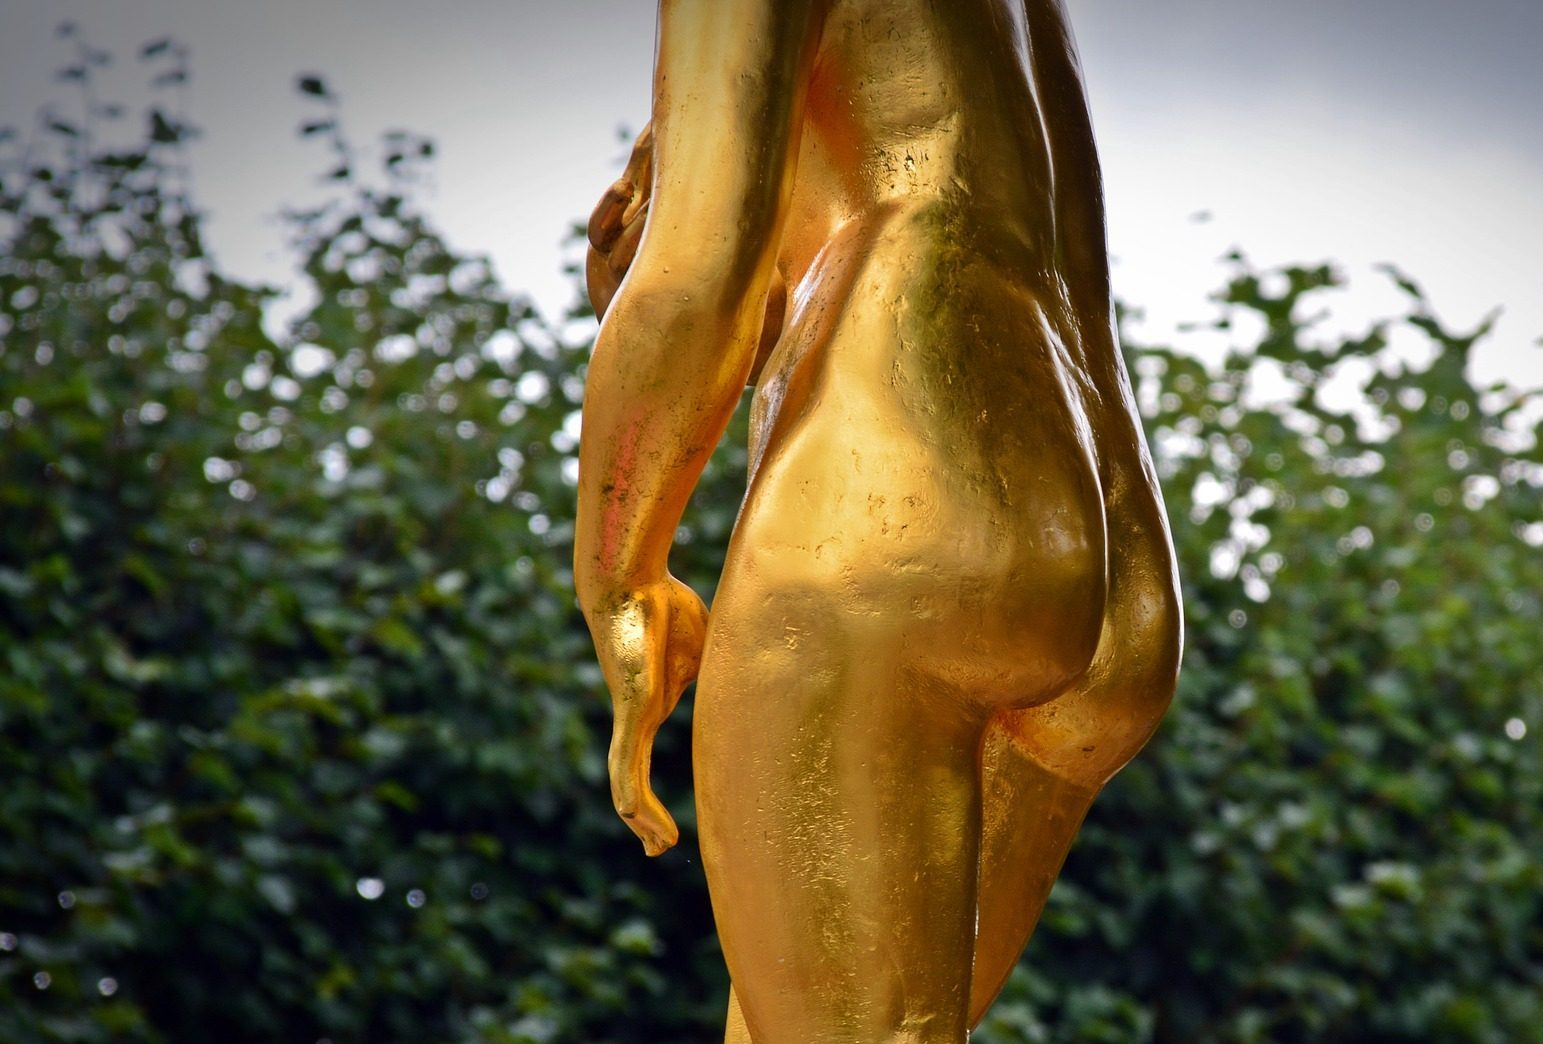 gold statue butt cropped